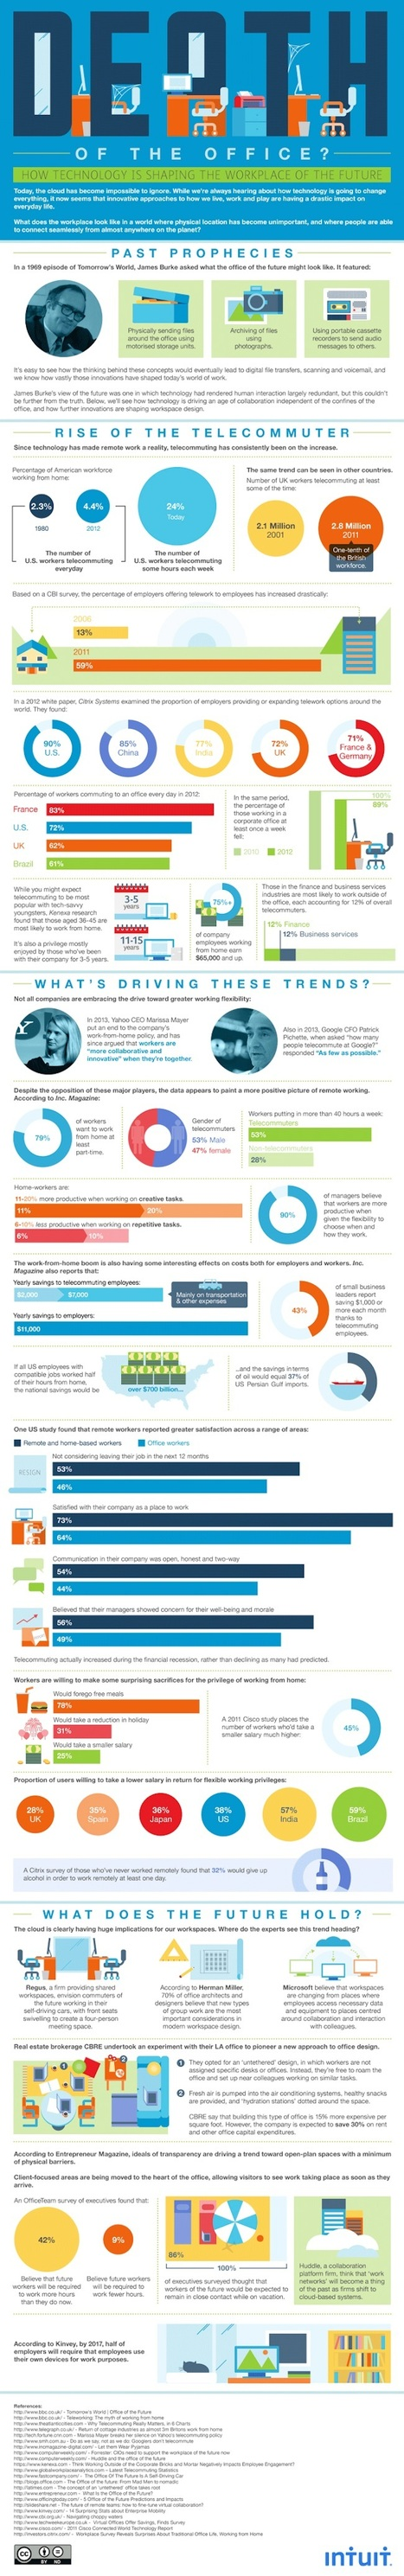 Will Telecommuting Replace the Office? How Technology Is Shaping the Workplace [Infographic] | MarketingHits | Scoop.it